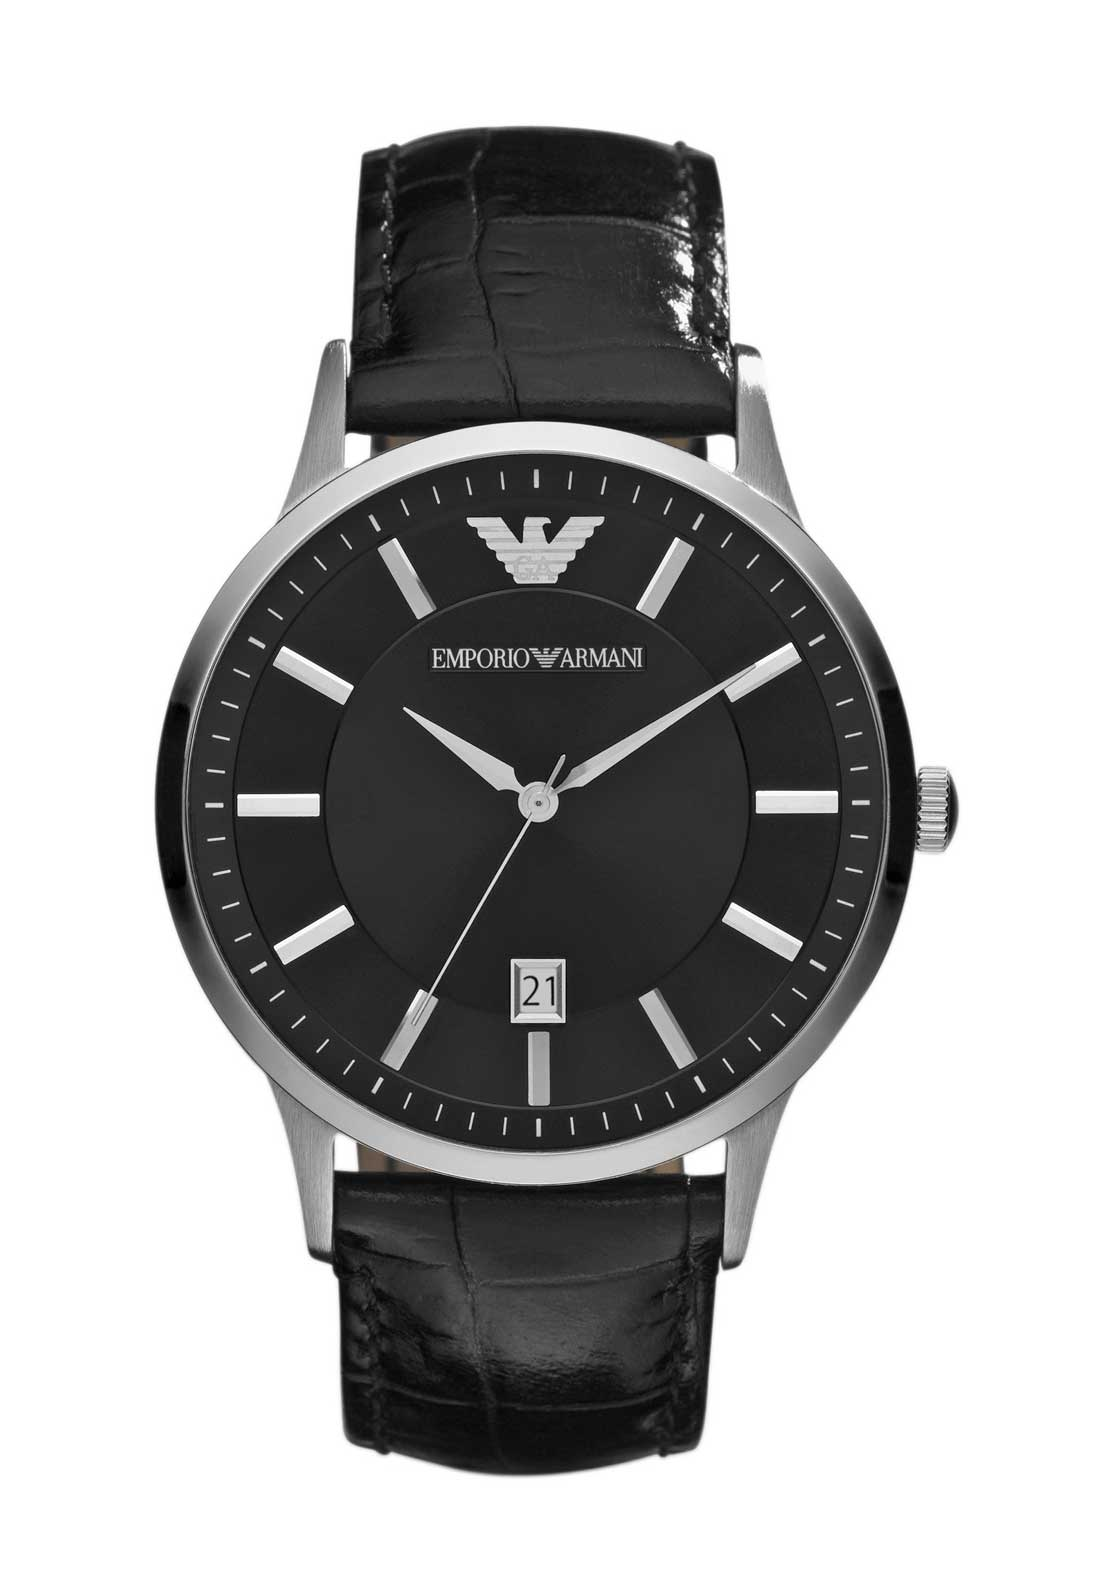 Emporio Armani Mens Leather Strap Watch, Black